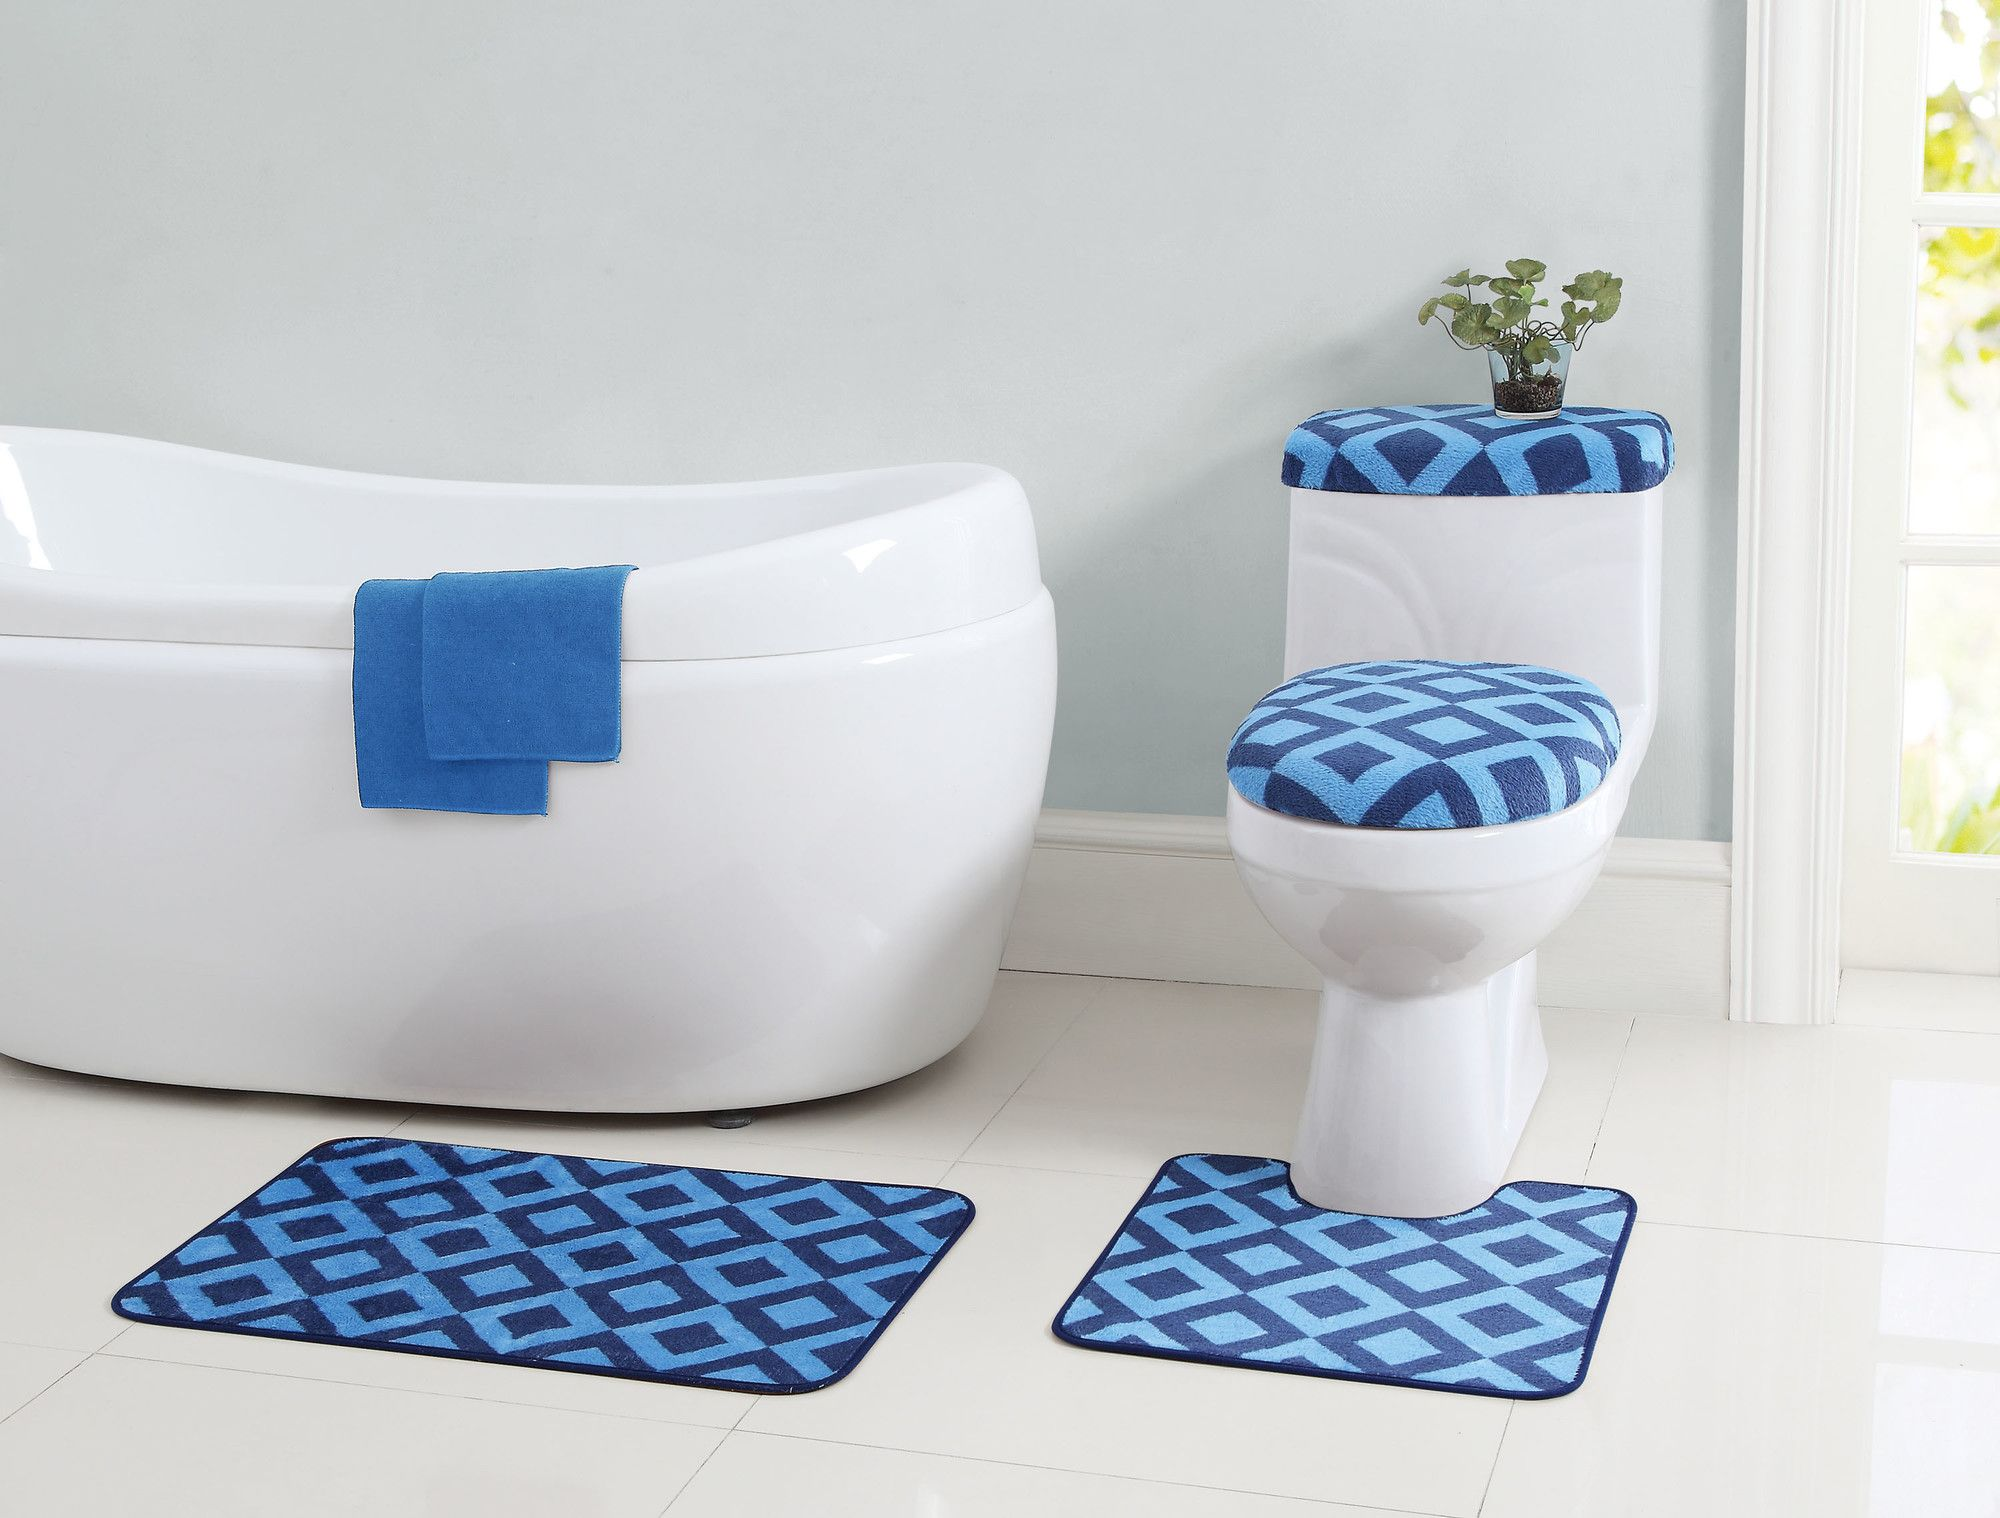 12-Piece Jessica Bath Rug Set